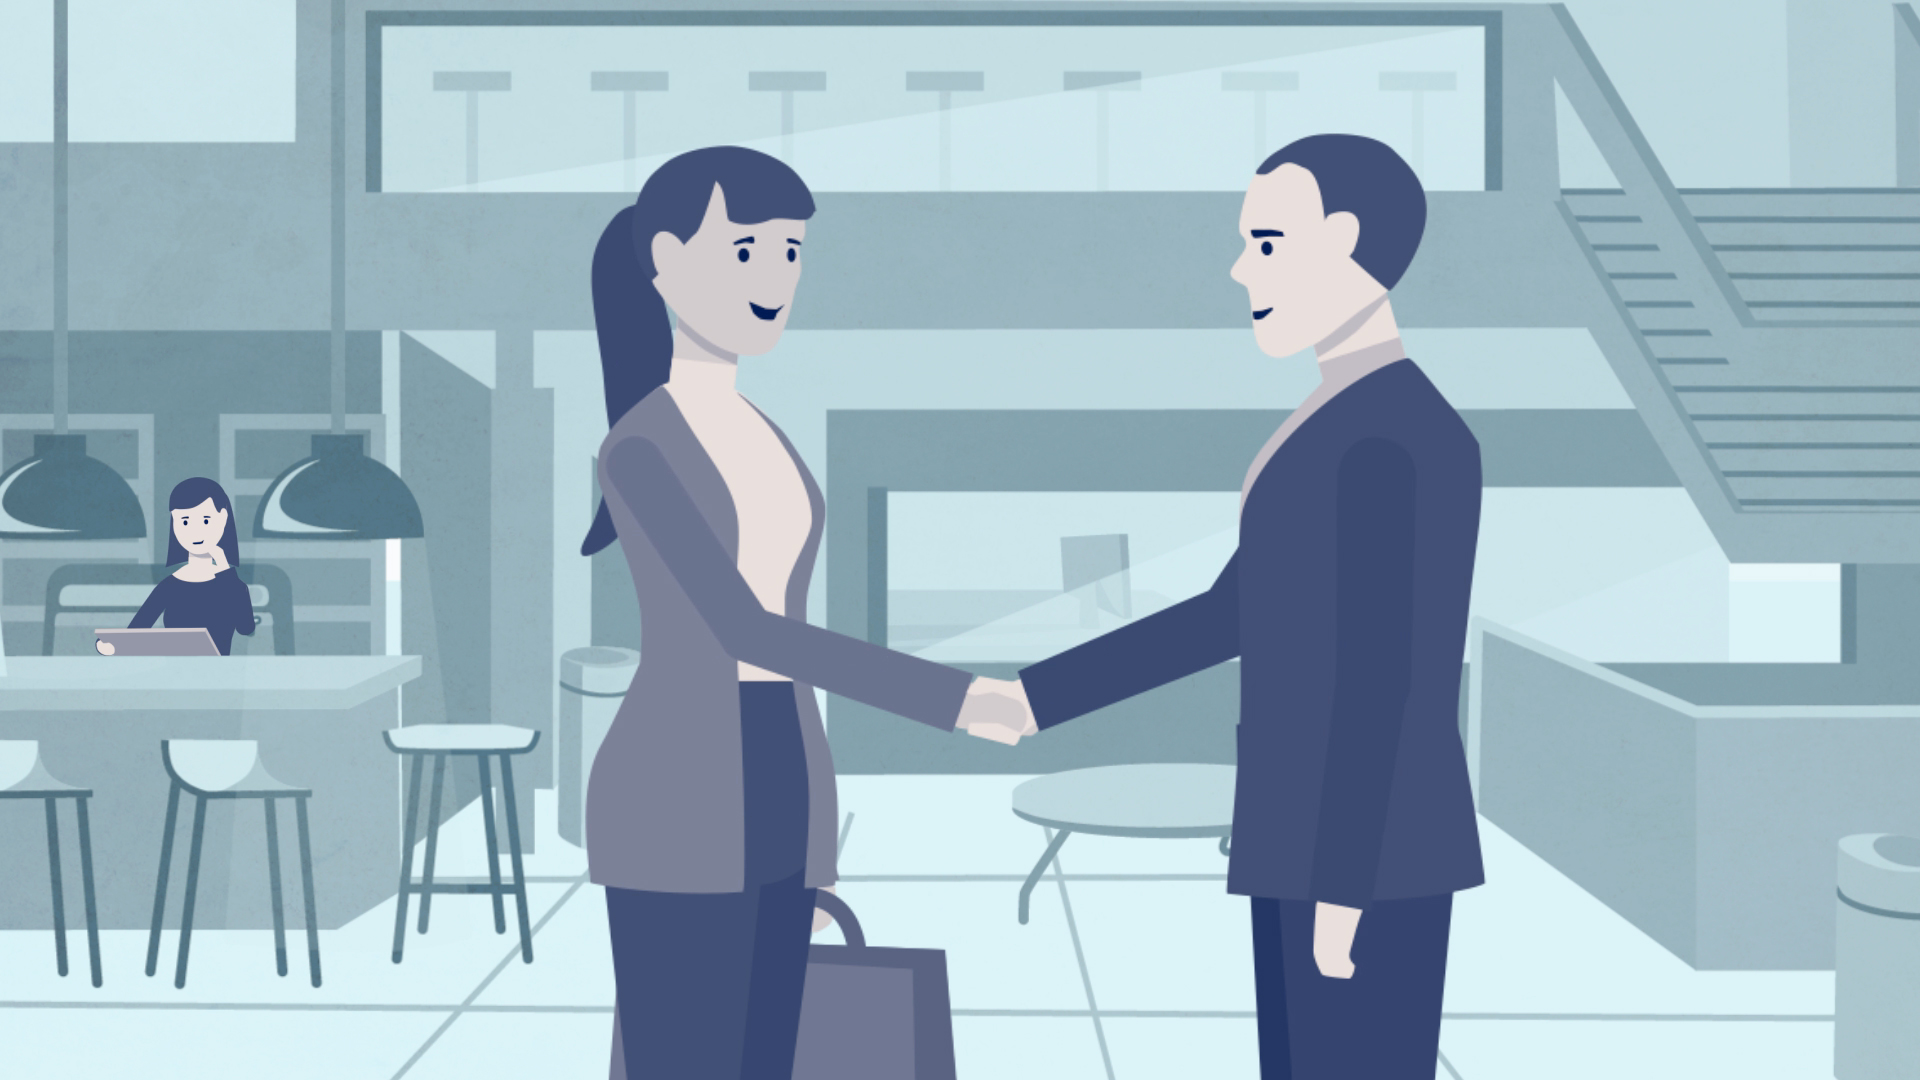 illustration of a man and woman shaking hand in a business building with a cafe and bar area in the background